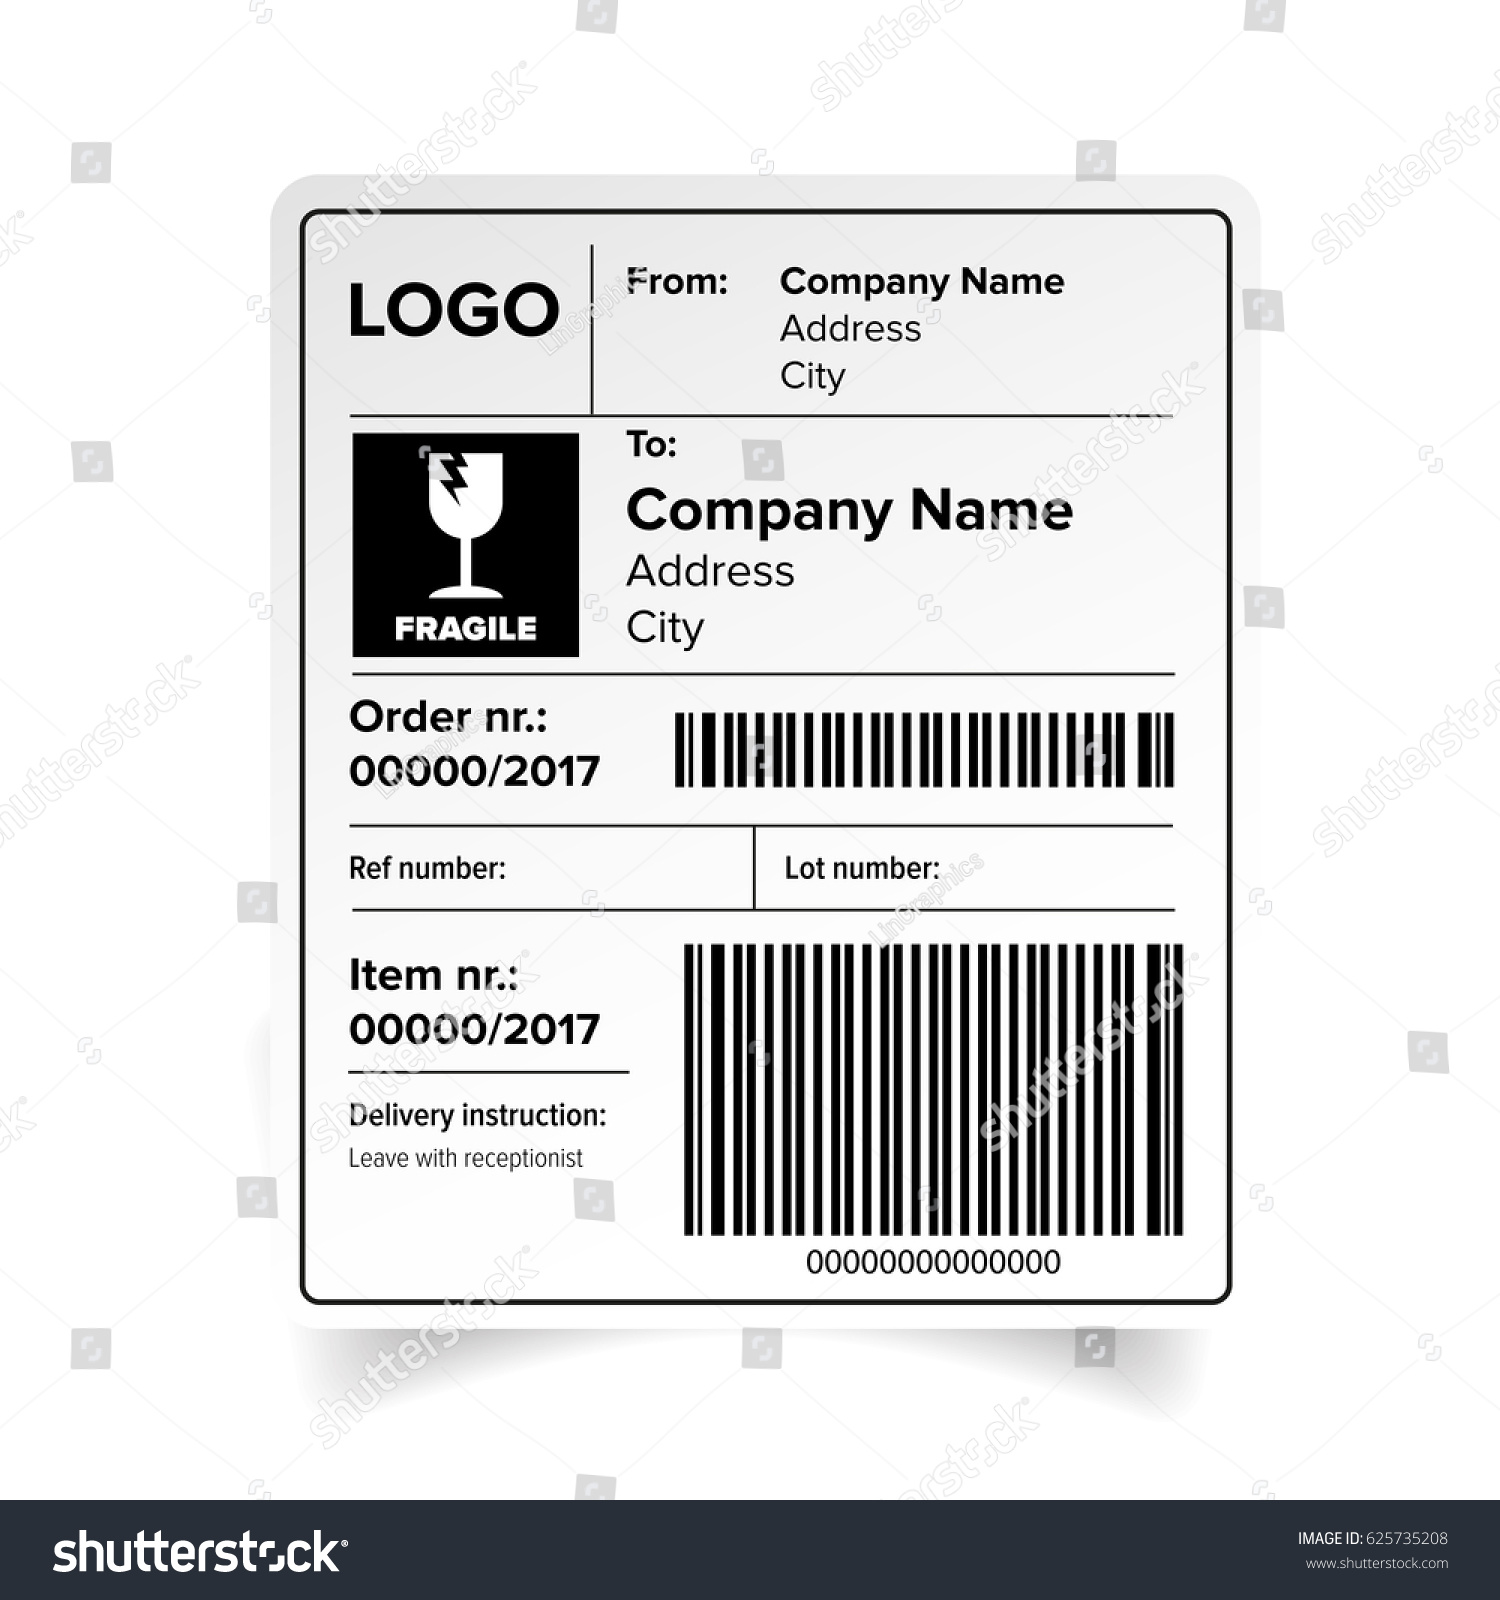 shipping label barcode template vector stock vector 625735208 shutterstock. Black Bedroom Furniture Sets. Home Design Ideas